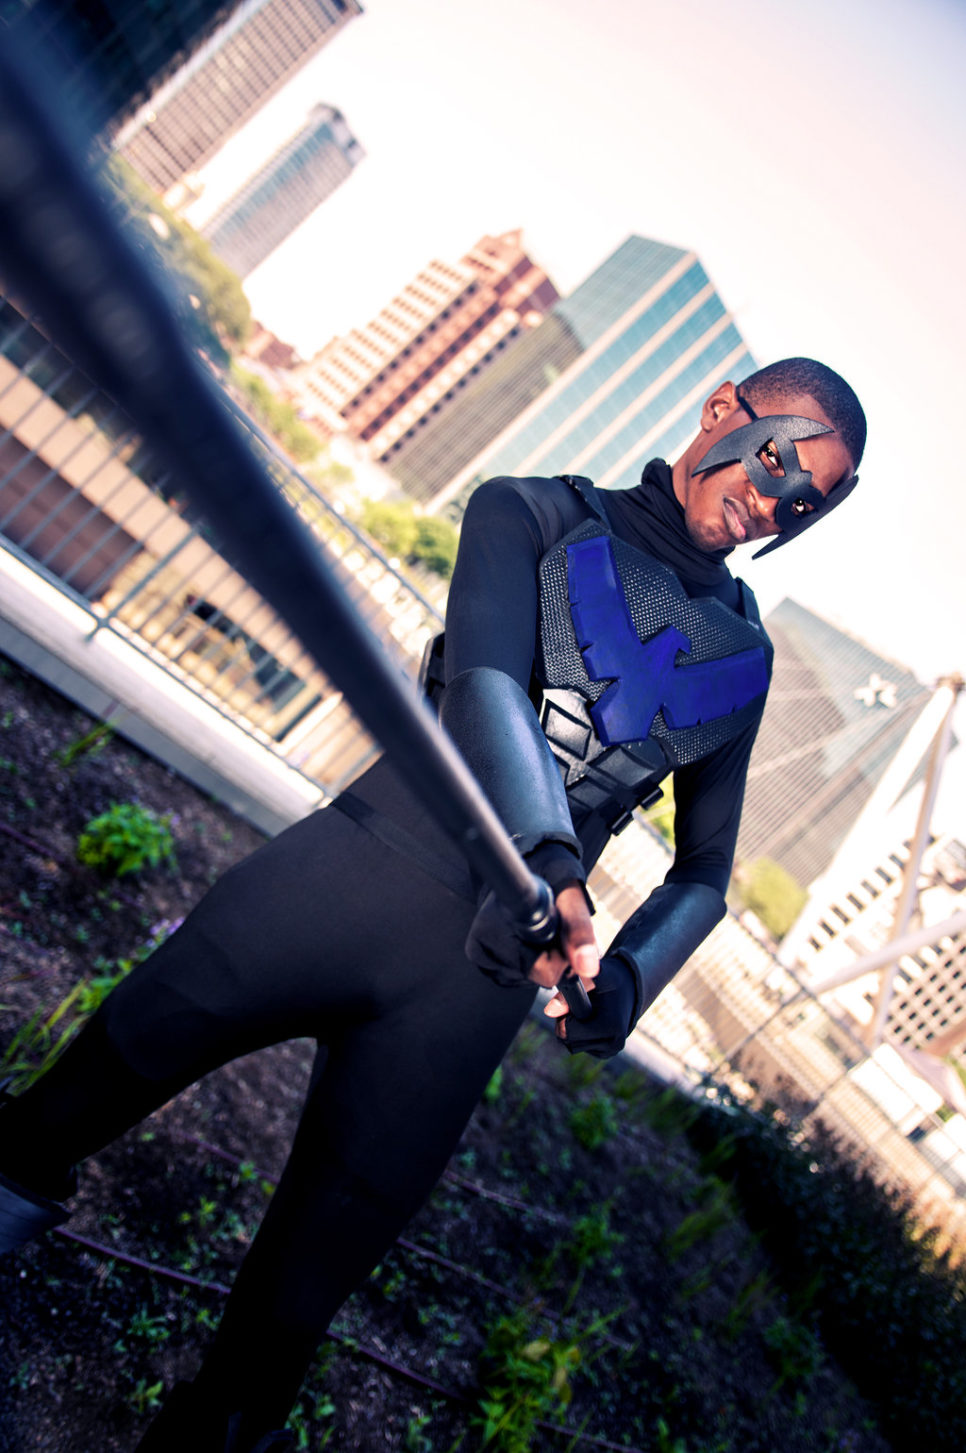 Nightwing z DC Comics - czas na cosplay!